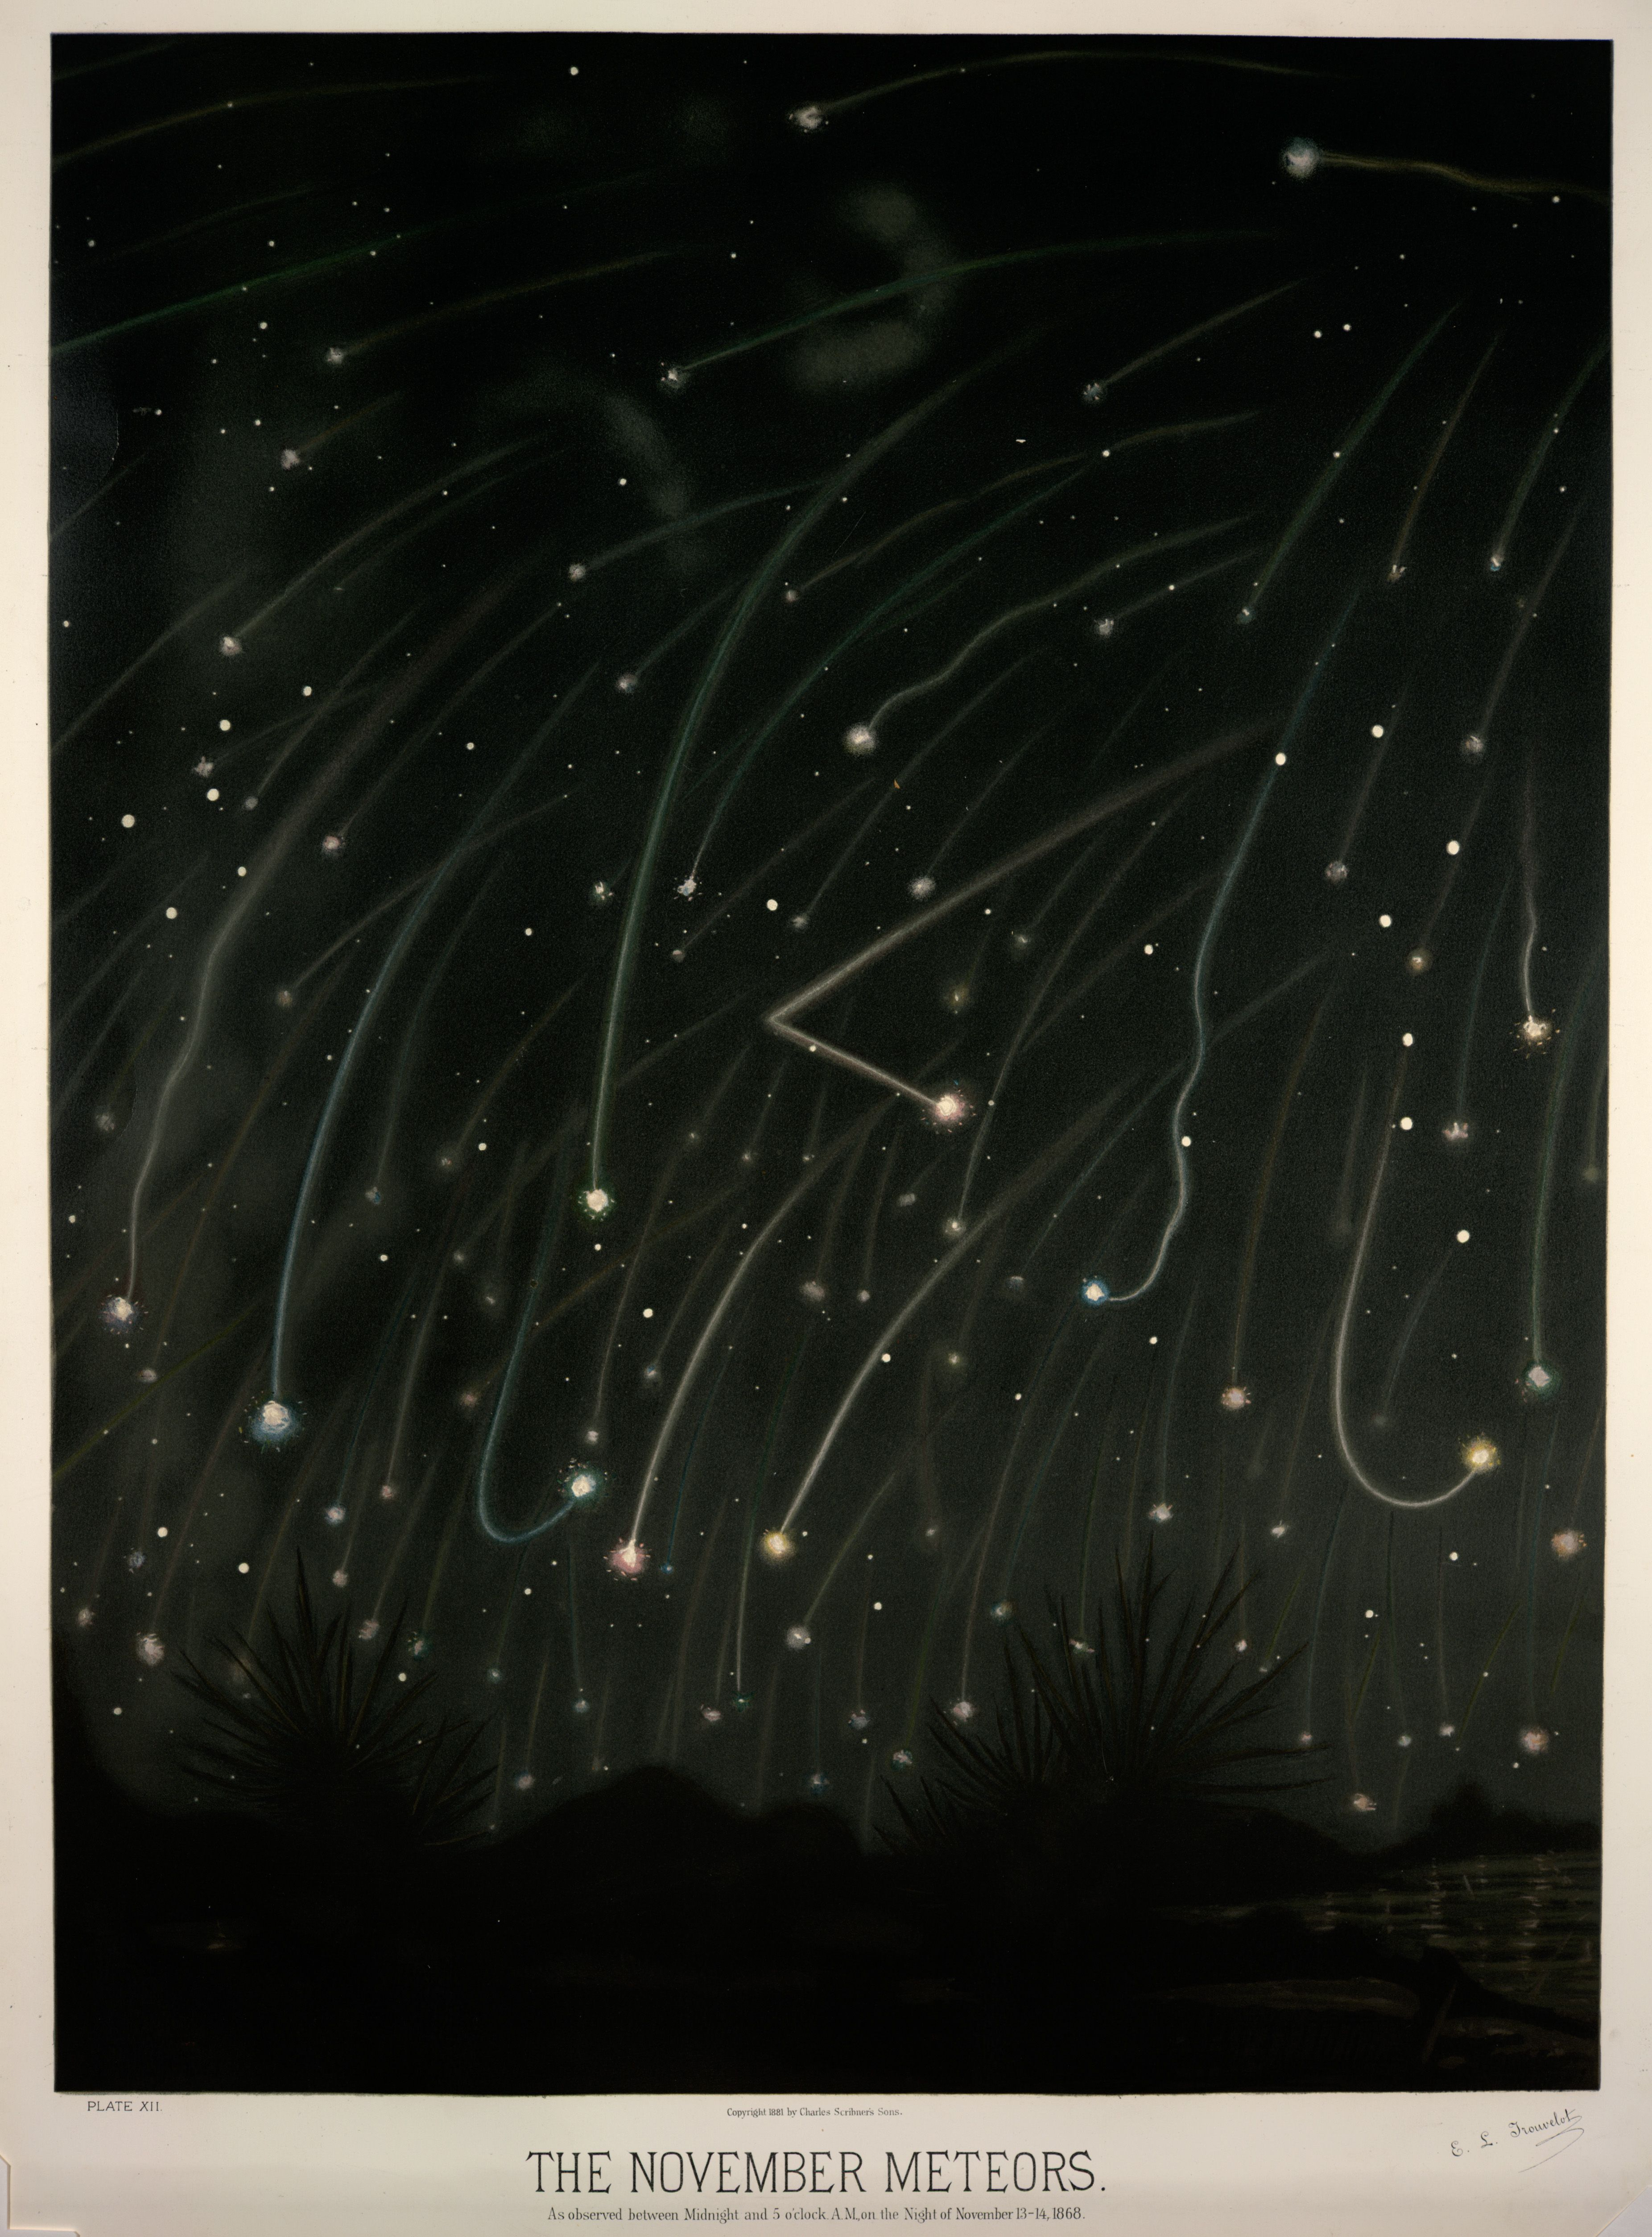 The Leonid meteor shower is tonight! Before you watch